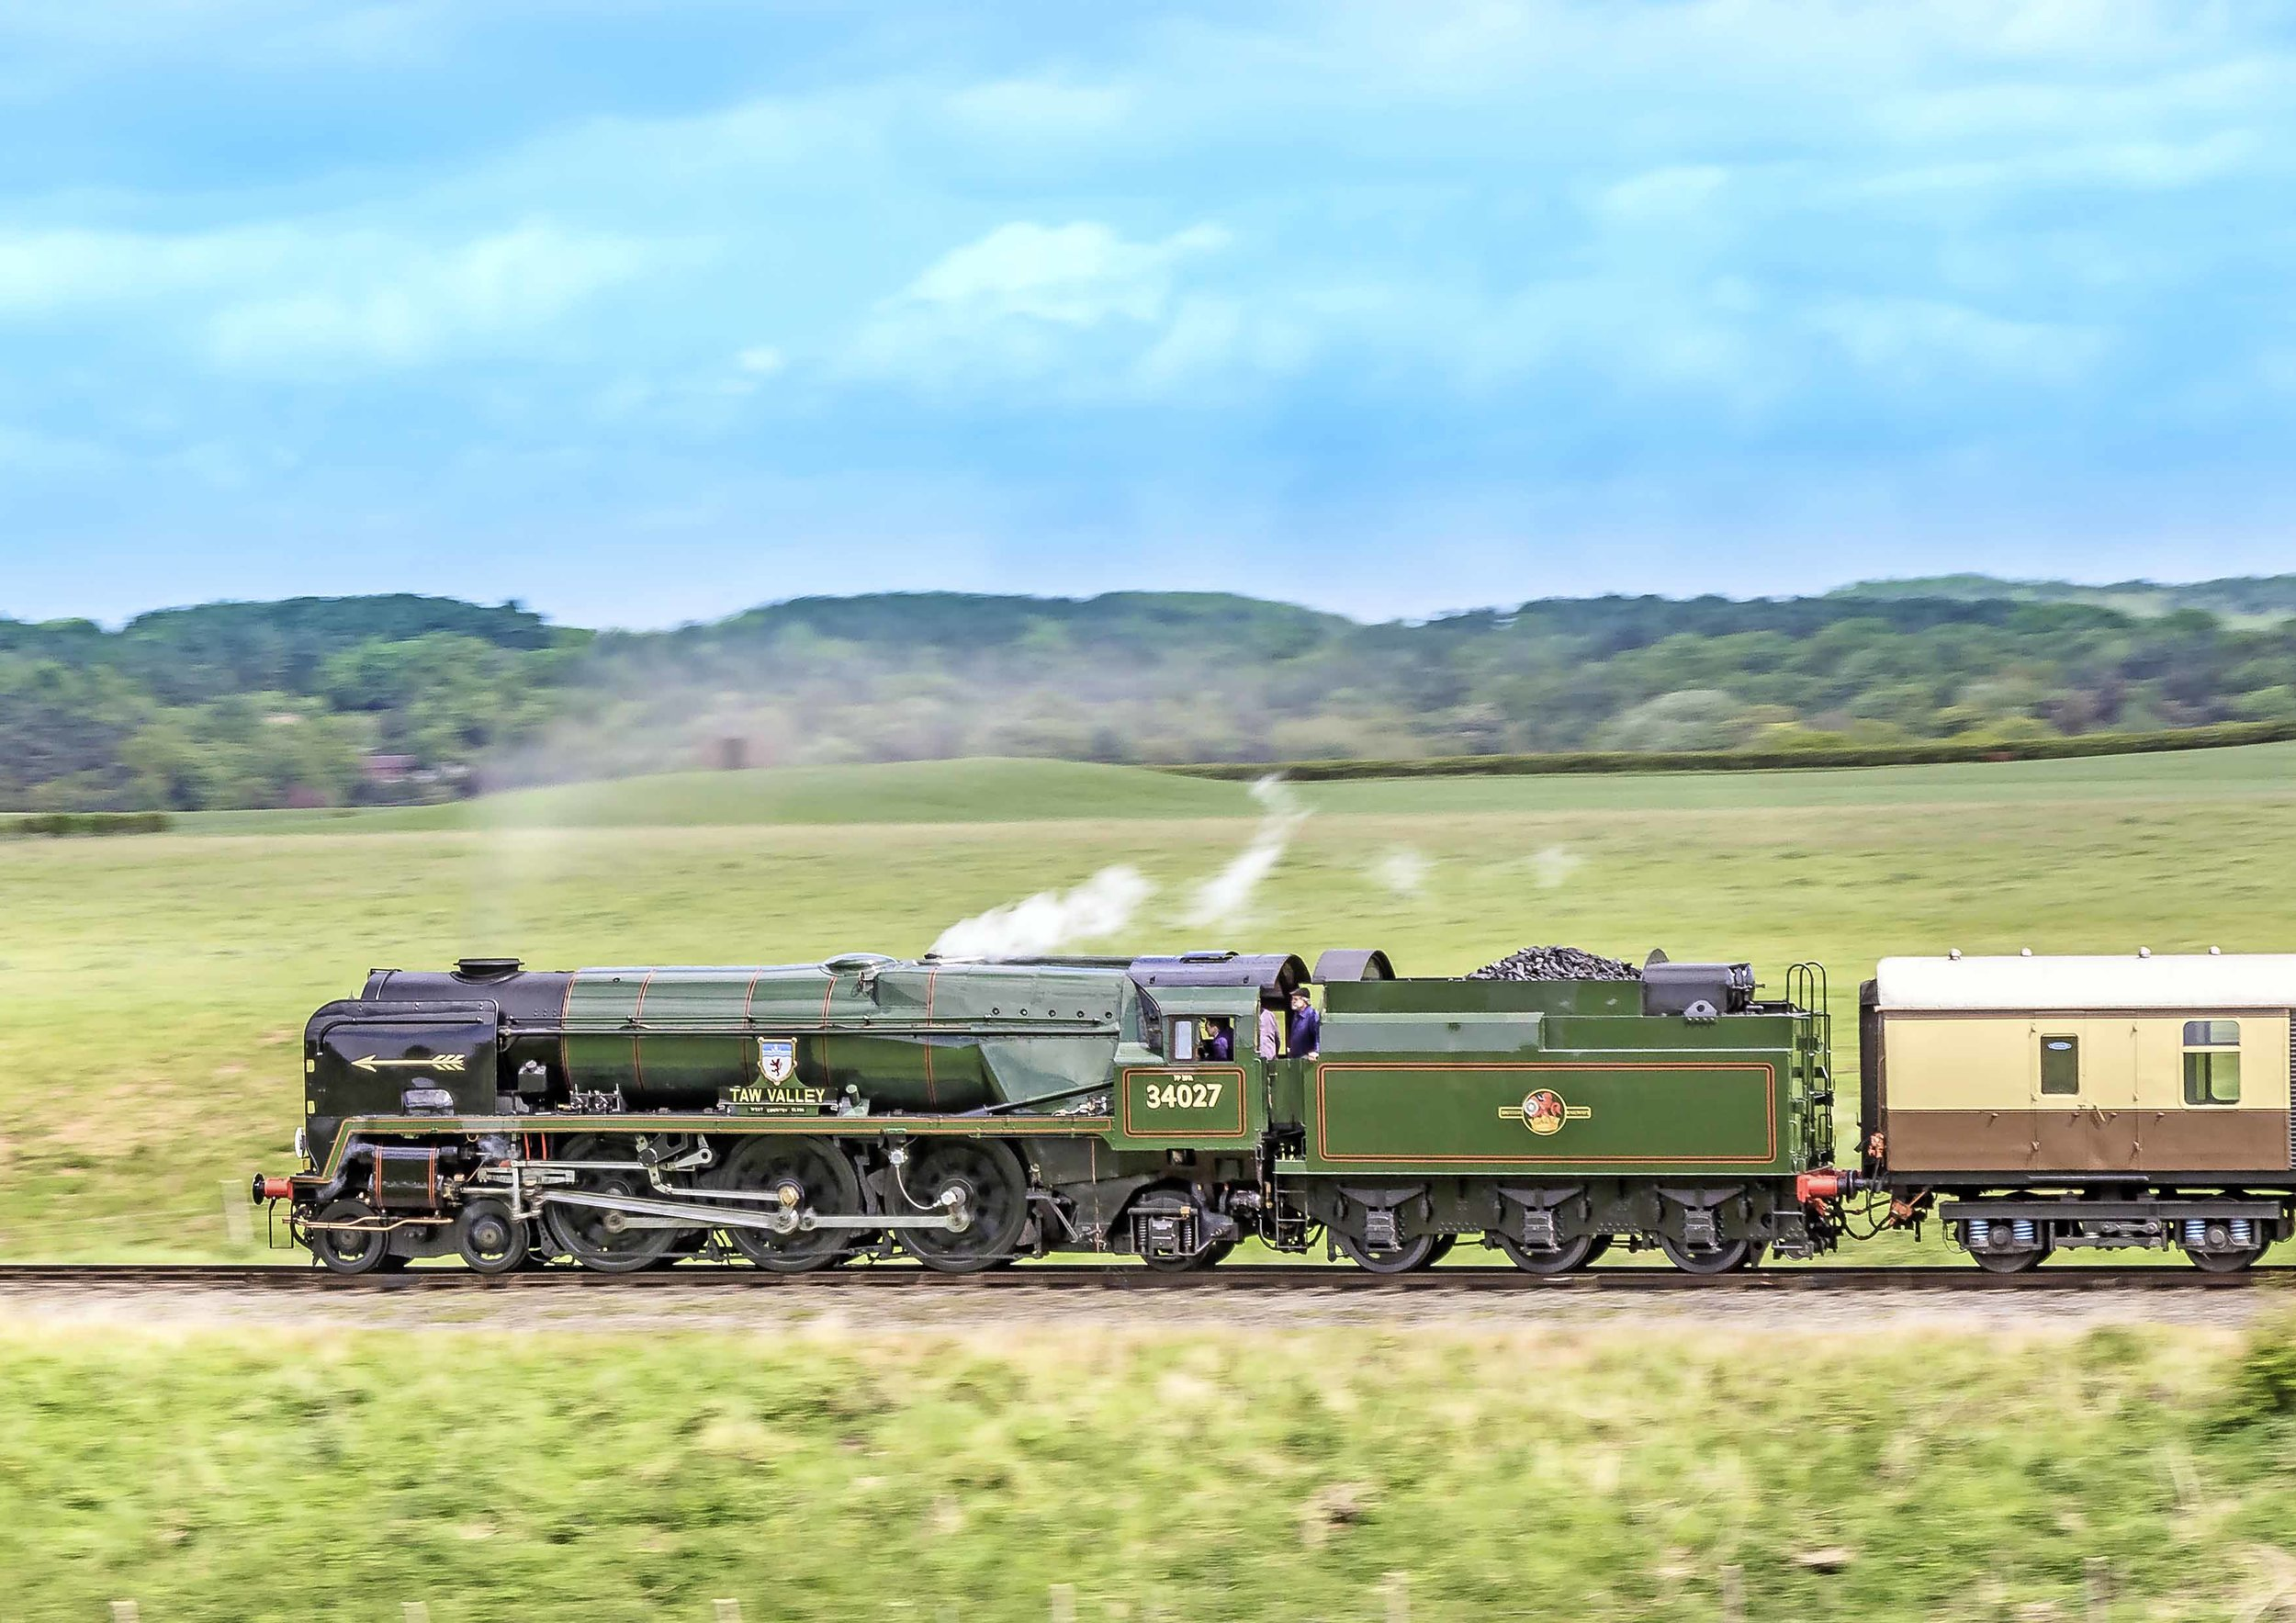 Also on Pullman duties and making its debut after overhaul, 'WC' No. 34027  Taw Valley  ascends Eardington bank on the Severn Valley Railway on May 16 2015. ALAN WEAVER